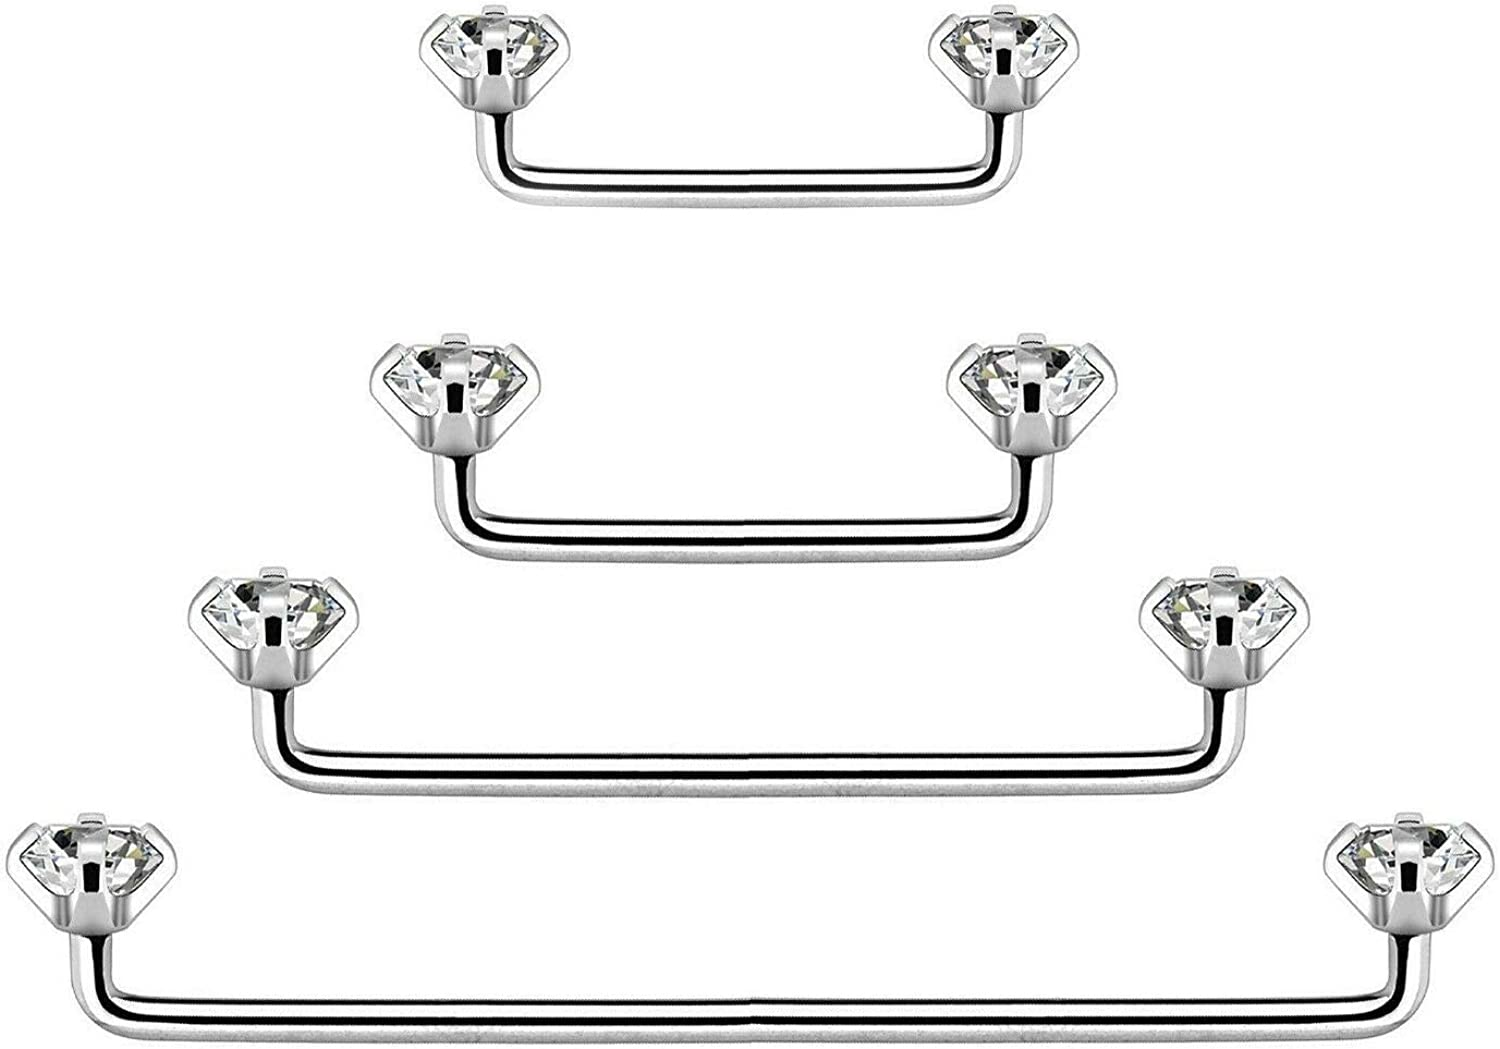 BodyJewelryOnline Staple Surface Barbell with Internally Threaded Prong Set Clear Gem Surgical Steel 14G